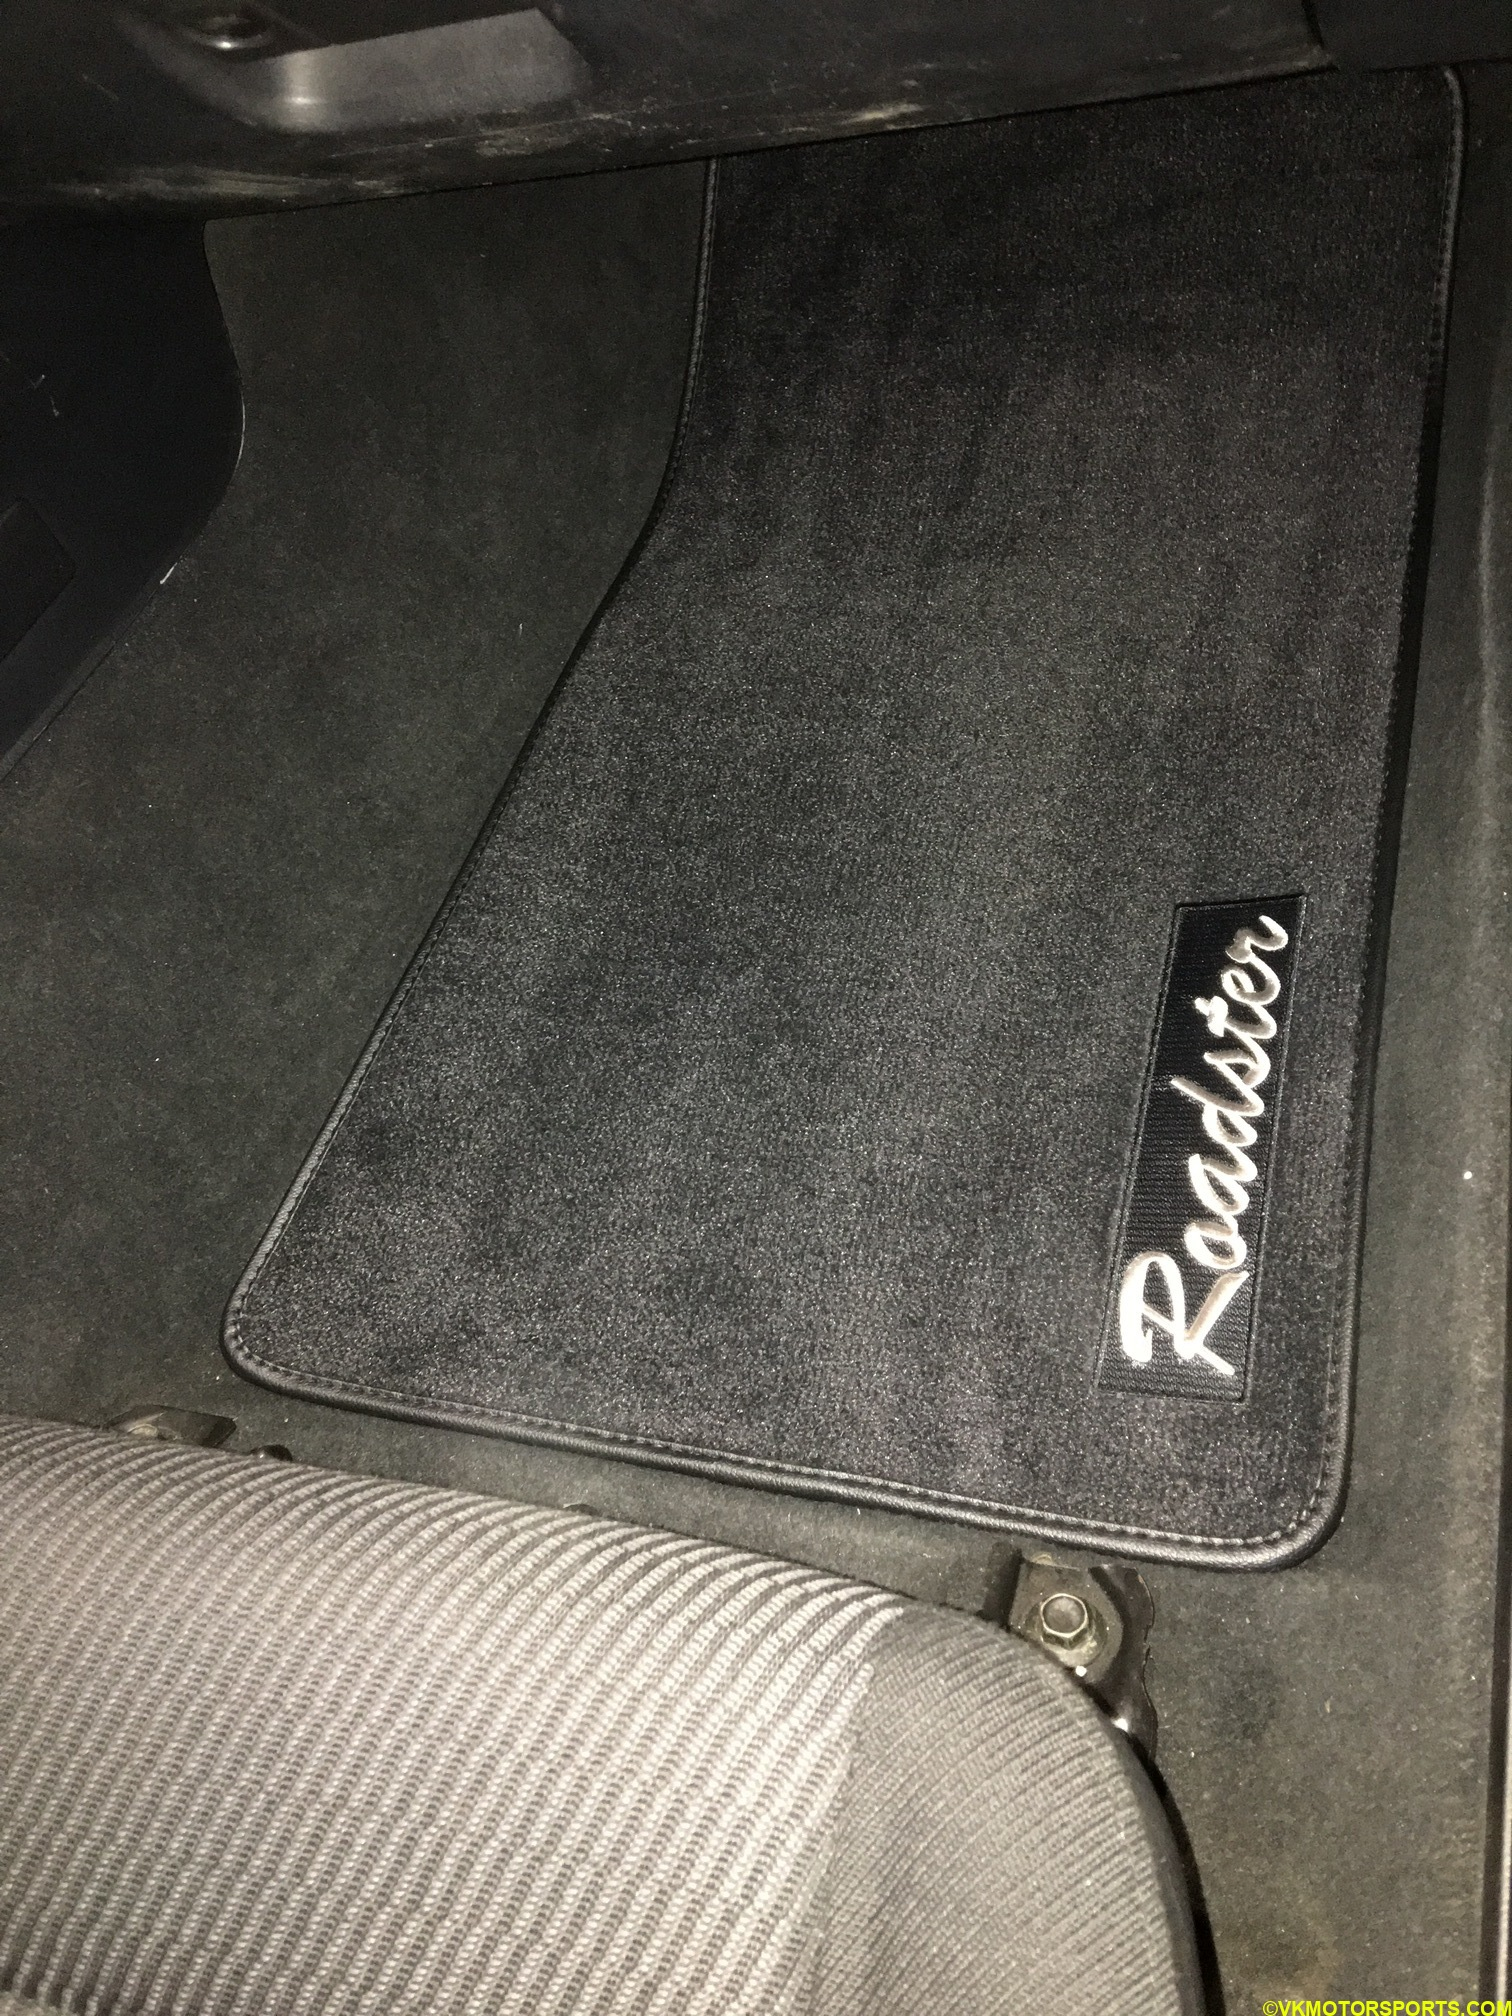 Figure 3. Passenger Side Floor Mat